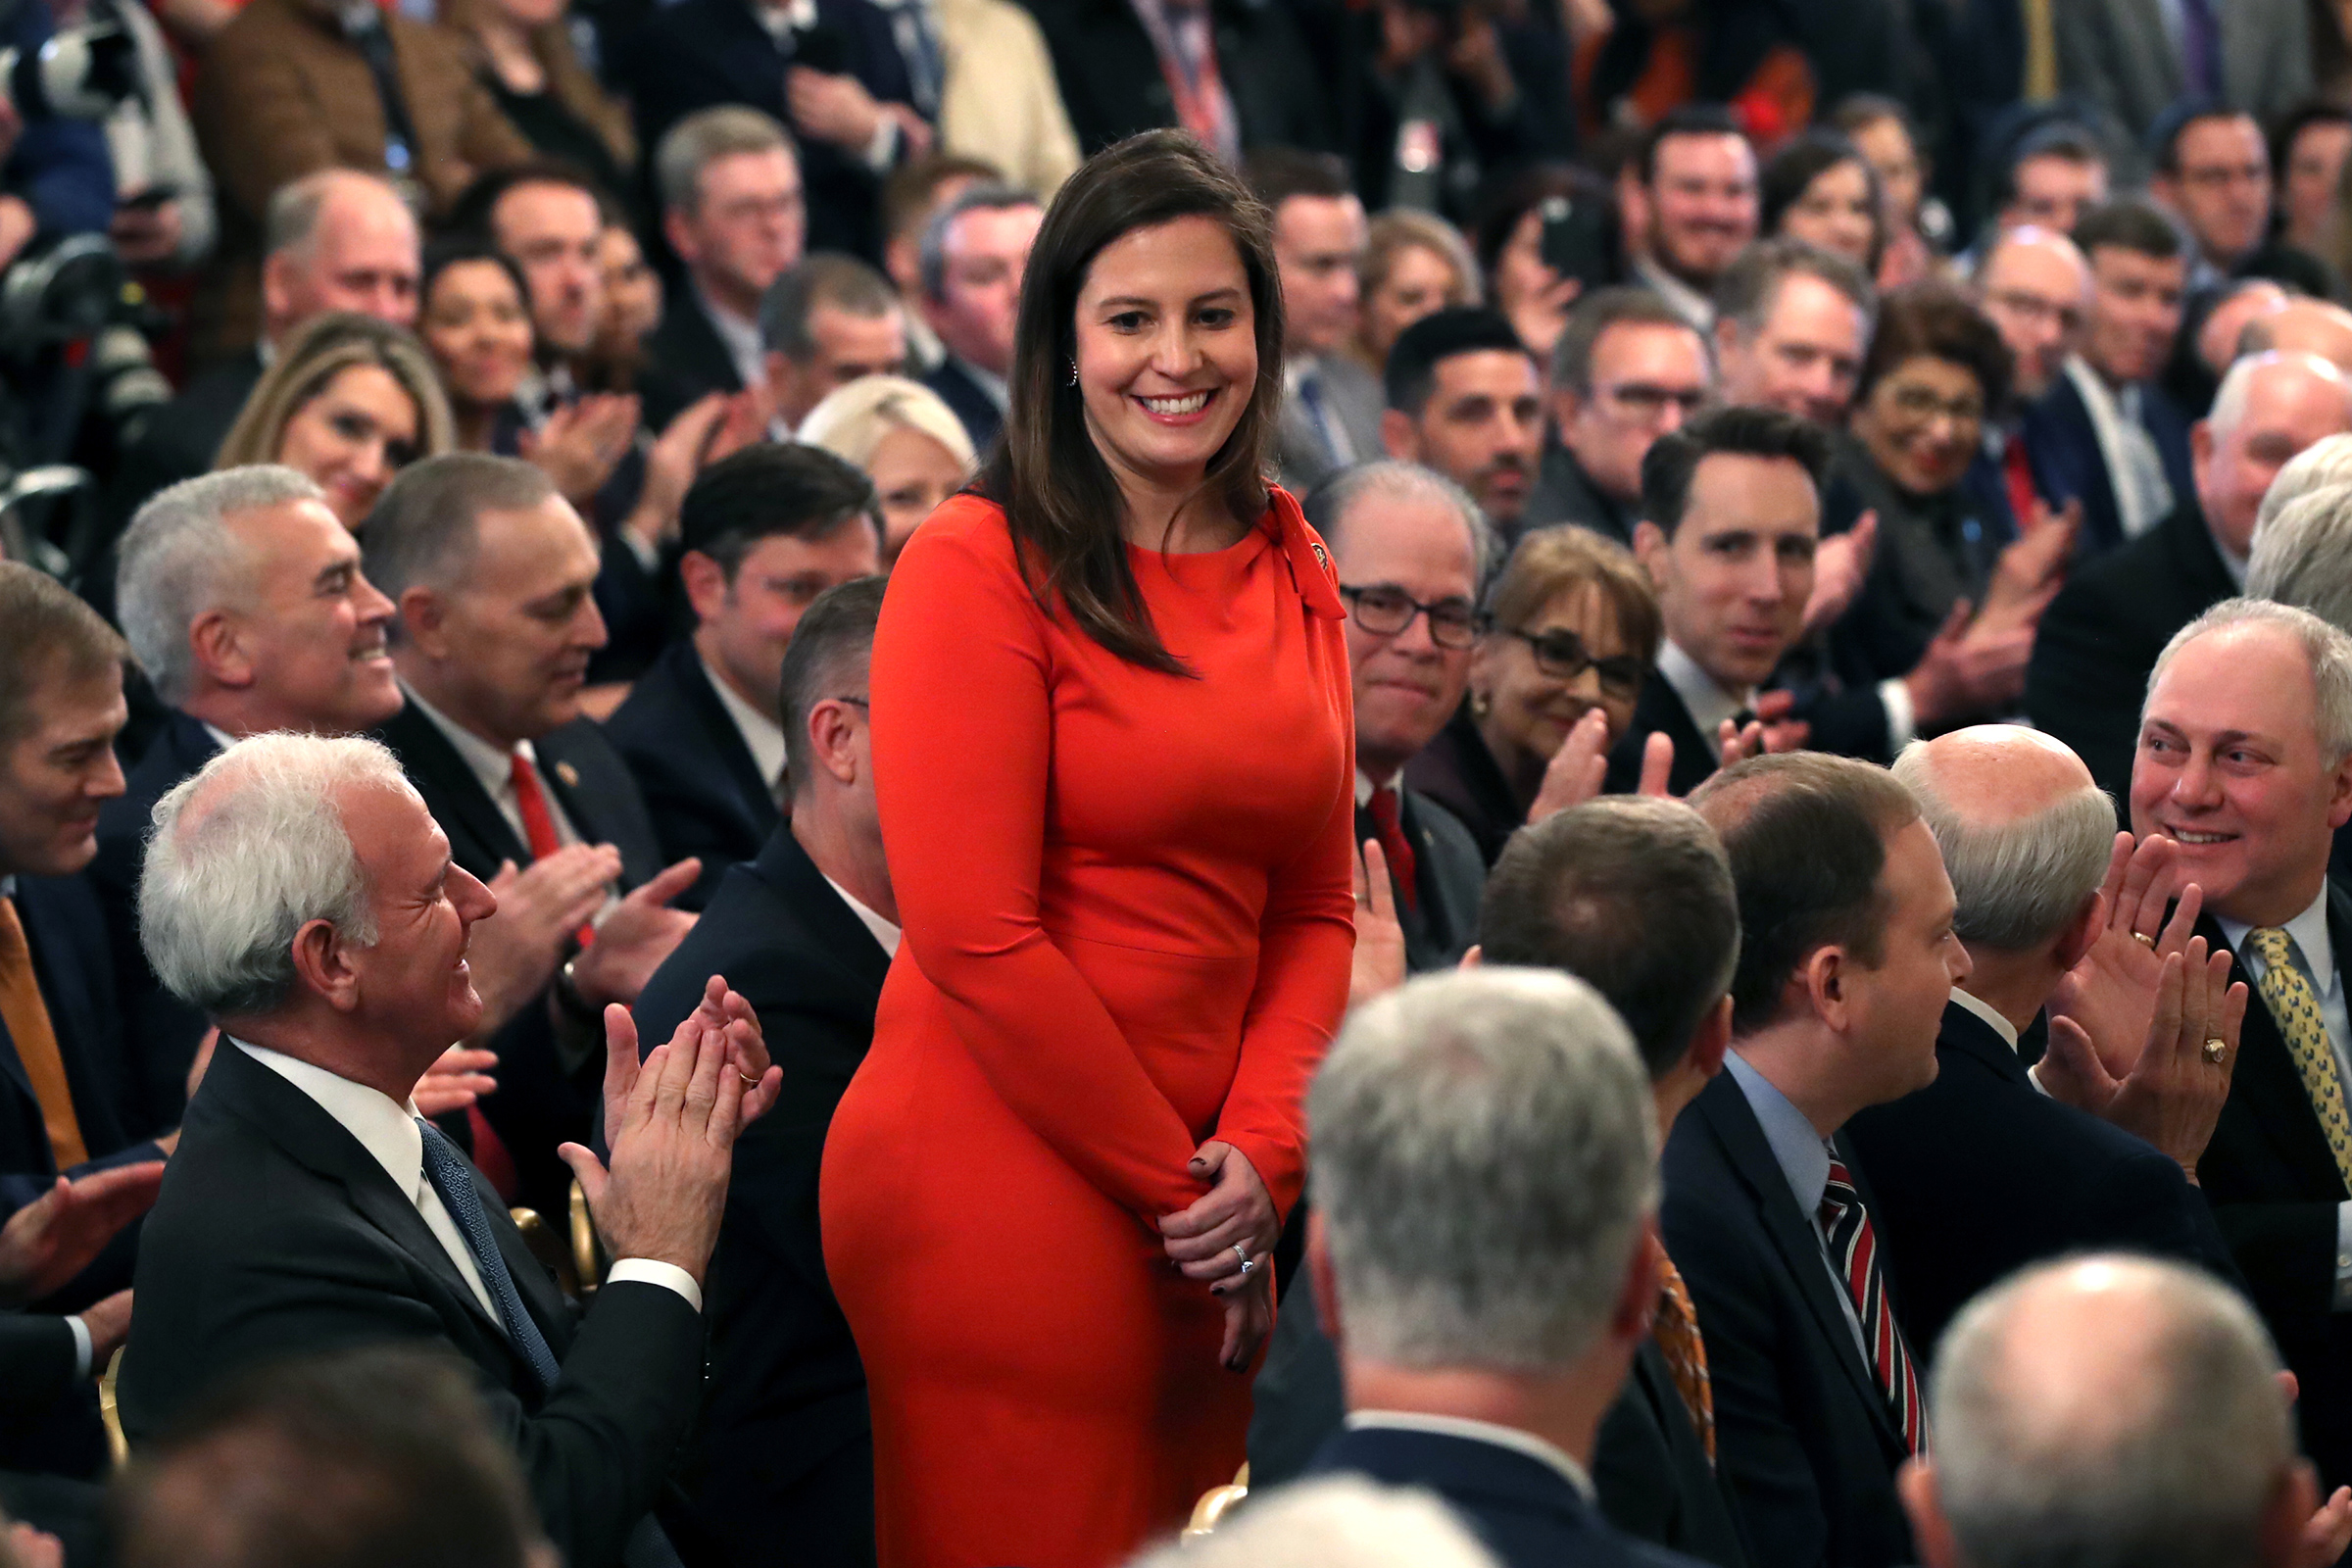 Elise Stefanik stands as she's acknowledged by former President Donald Trump as he speaks one day after the U.S. Senate acquitted him on two articles of impeachment, in the East Room of the White House, Feb. 6, 2020